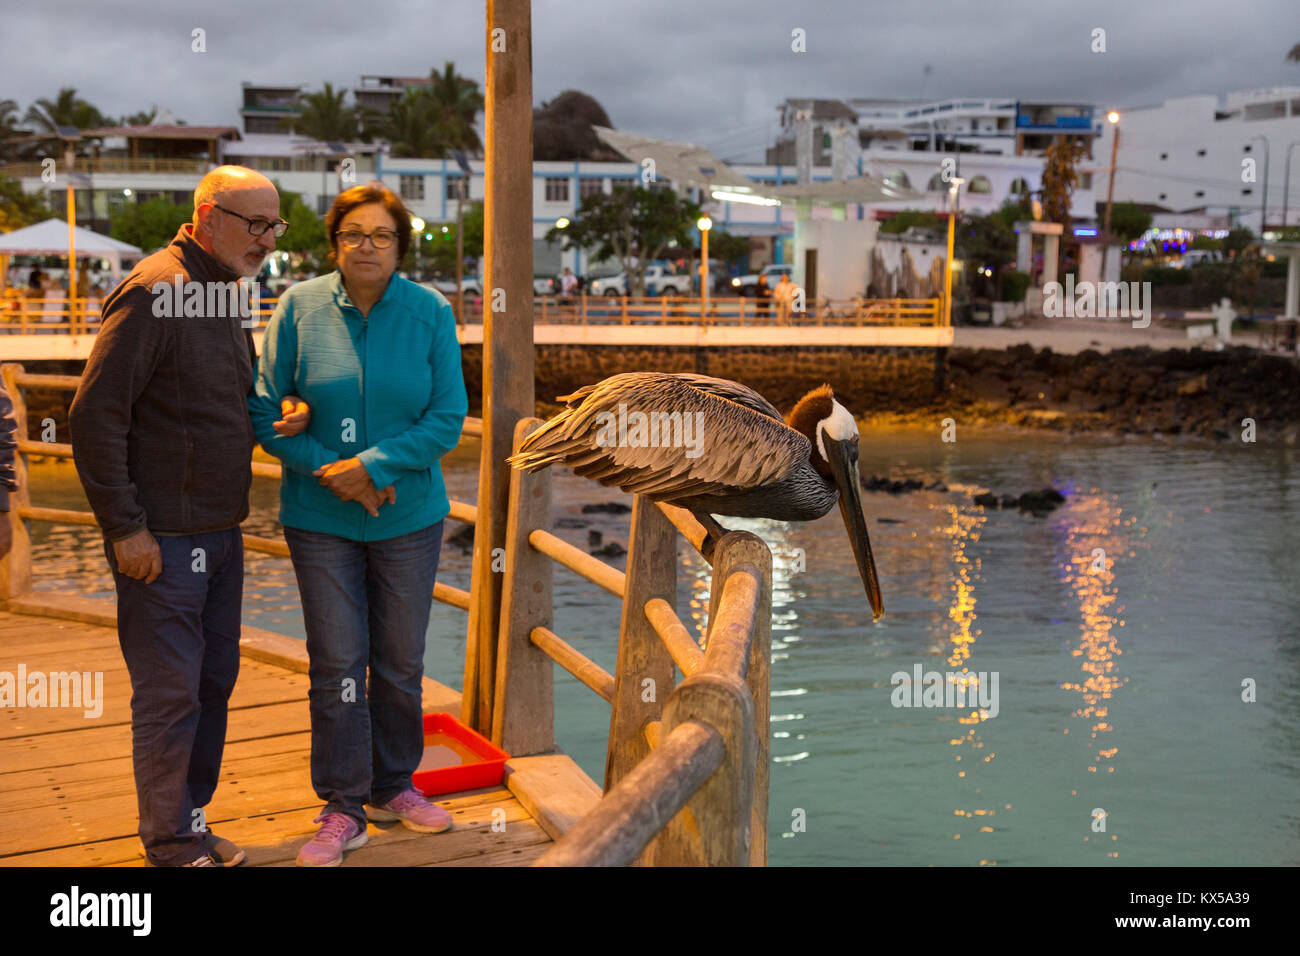 Galapagos Islands - a tourist couple looking at a brown pelican, Puerto Ayora, San Cristobal Island, Galapagos Islands - Stock Image